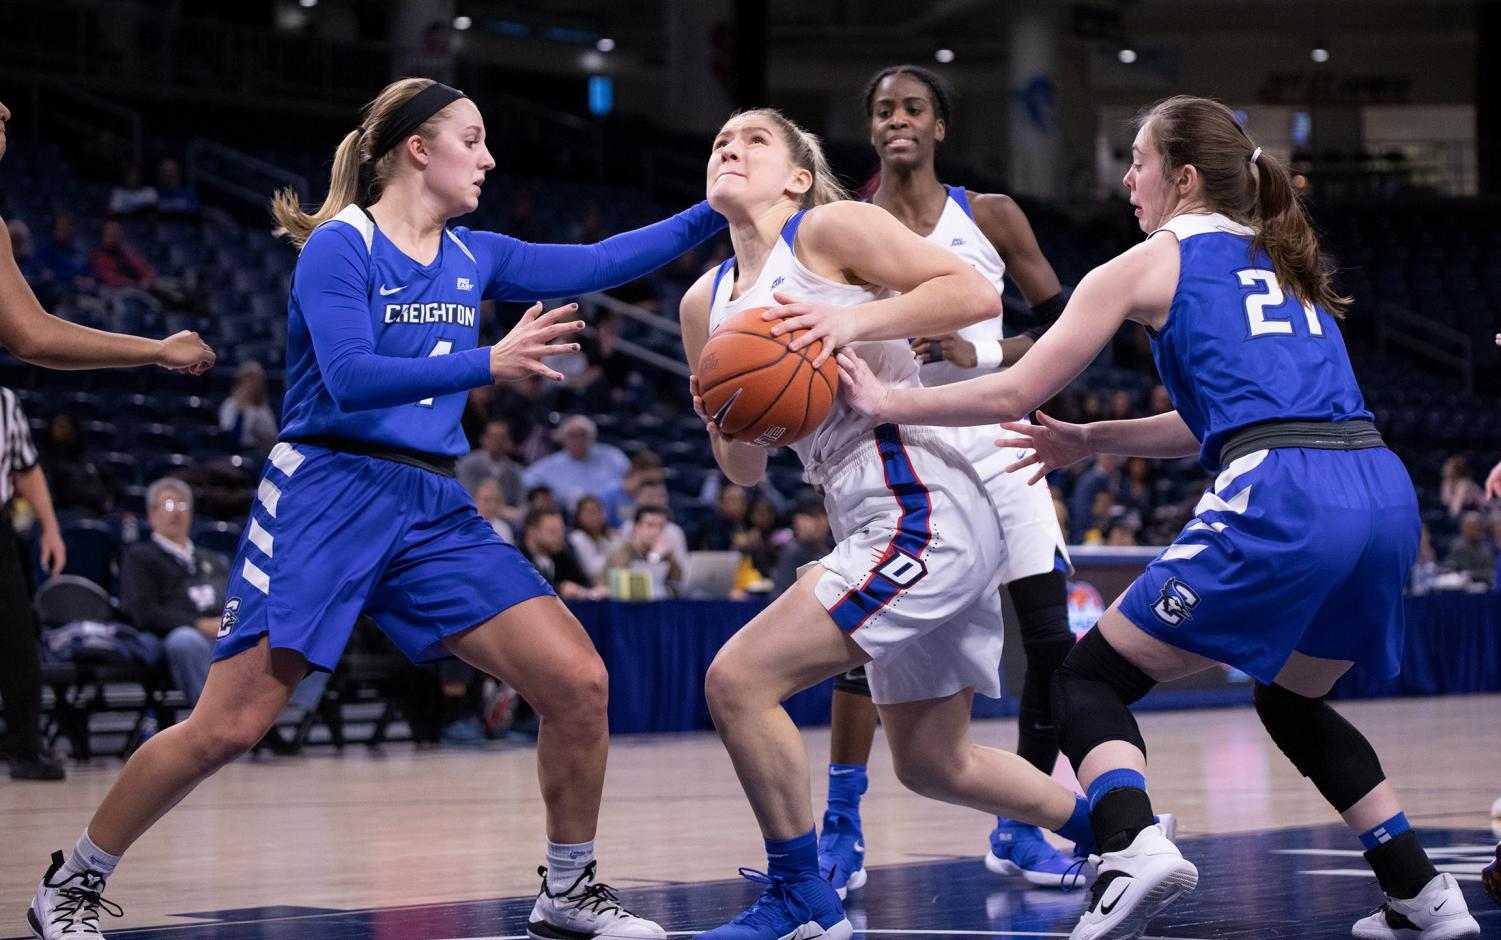 DePaul+sophomore+guard+Dee+Bekelja+winds+her+way+into+the+lane+with+two+Creighton+defenders+Temi+Carda+and+Olivia+Elger+challenging+Monday+night+at+Wintrust+Arena.+Bekelja+finished+with+four+points+in+18+minutes.+Alexa+Sandler+%7C+The+DePaulia